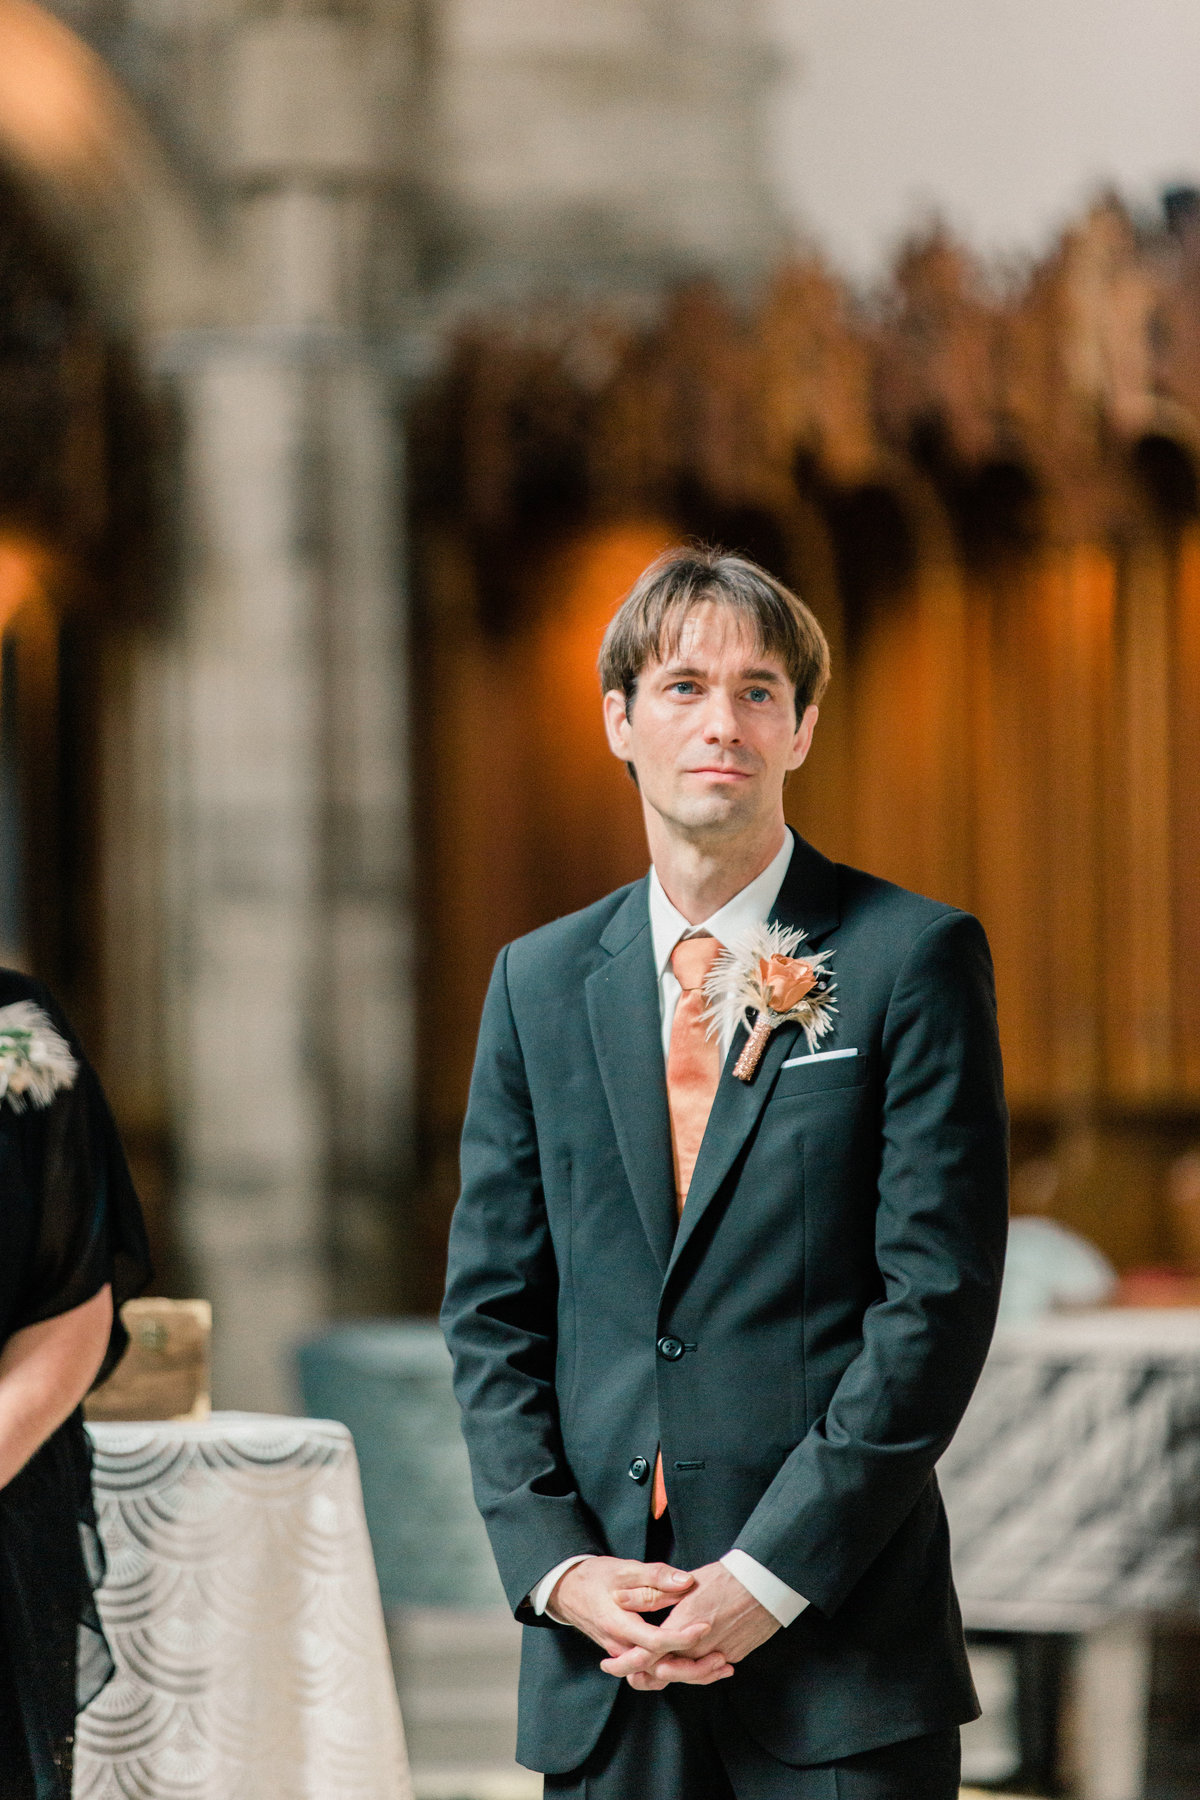 Dorothy_Louise_Photography_University_of_Chicago_Chapel_Wedding-20